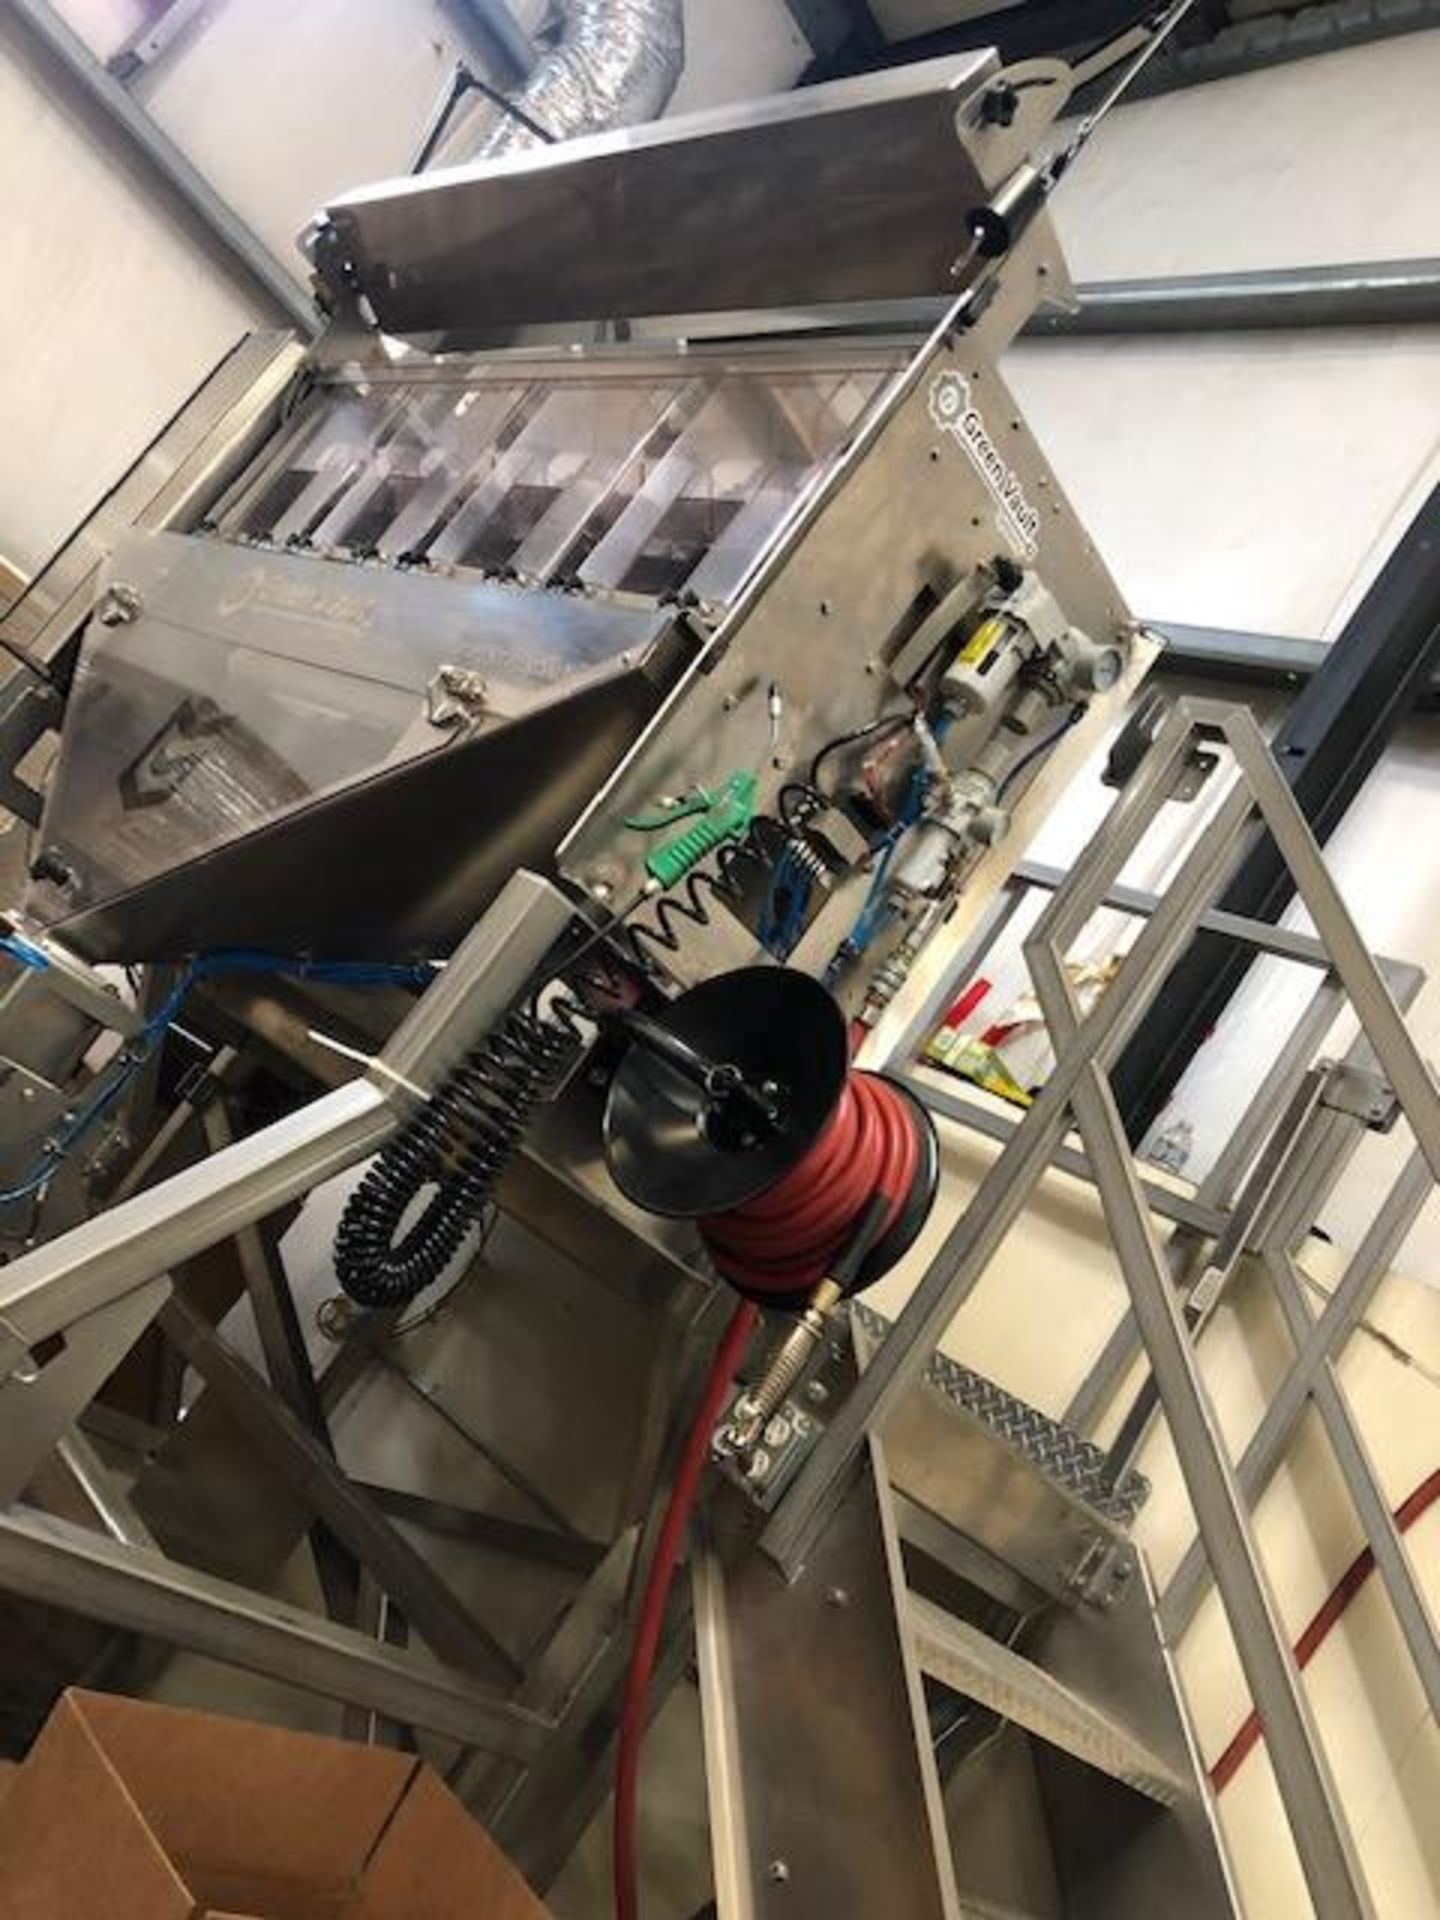 Used-Green Vault Systems Precision Batcher for Batching & Packaging Flower w/ Air Compressor - Image 6 of 23